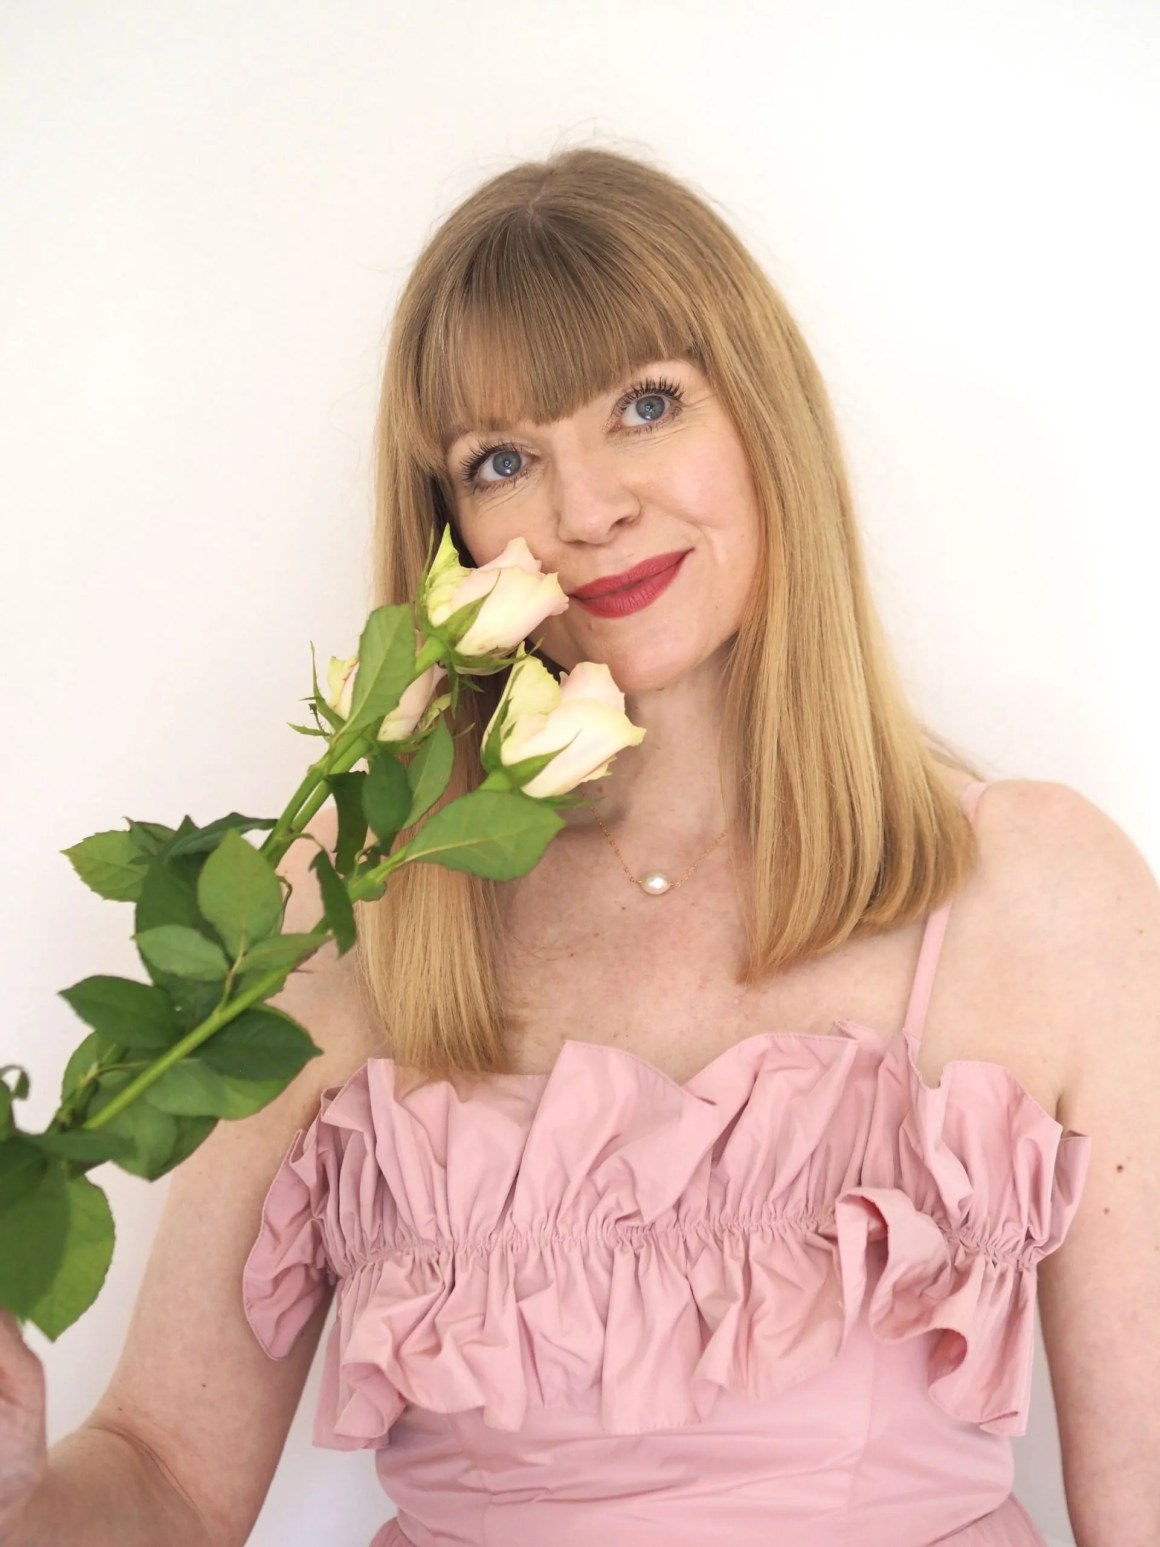 woman wears pink ruffle top and is holding white roses towards her face